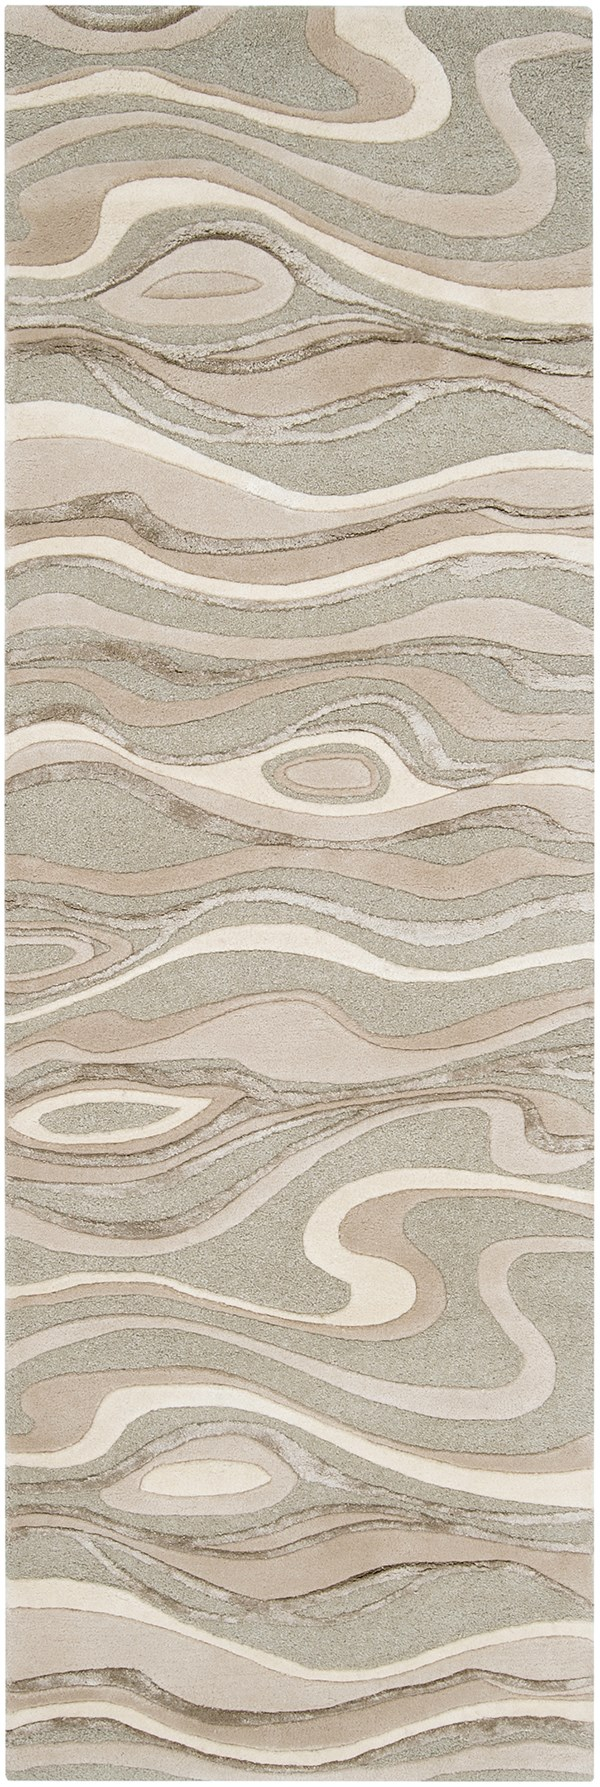 Sage Green, Ivory, White, Taupe Contemporary / Modern Area Rug